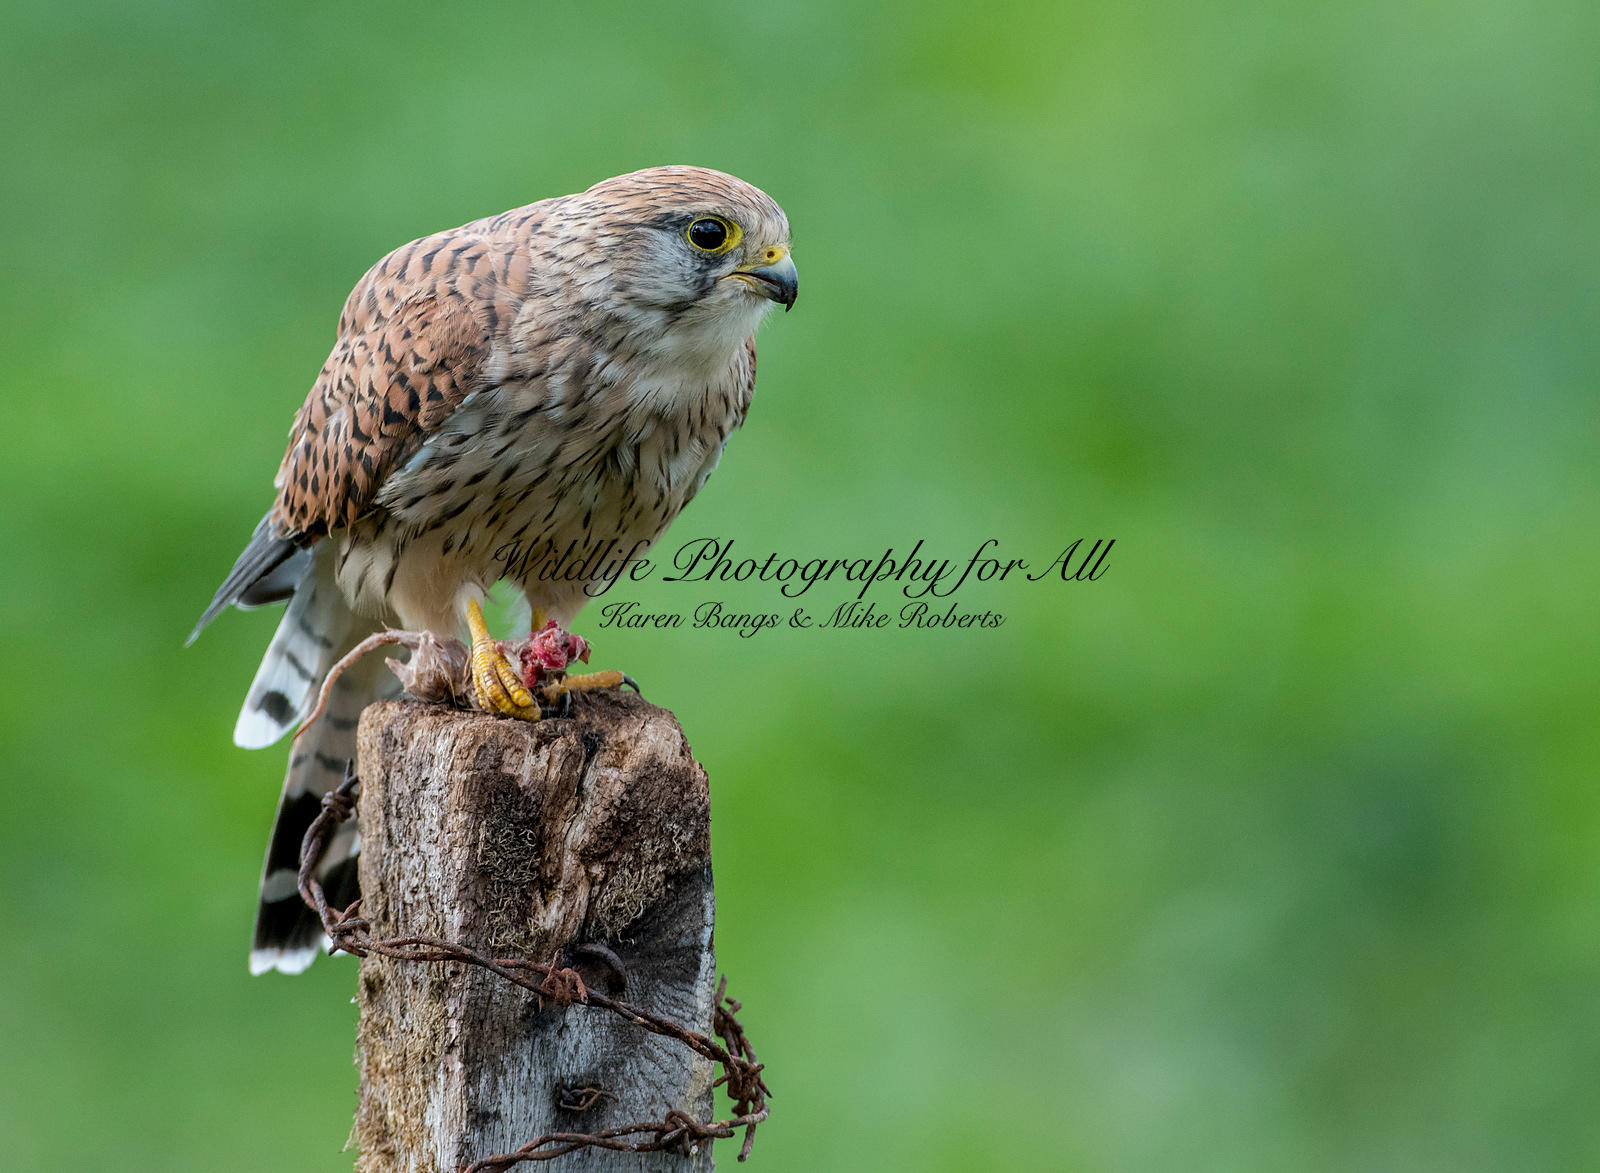 Female Kestrel - Mike Roberts